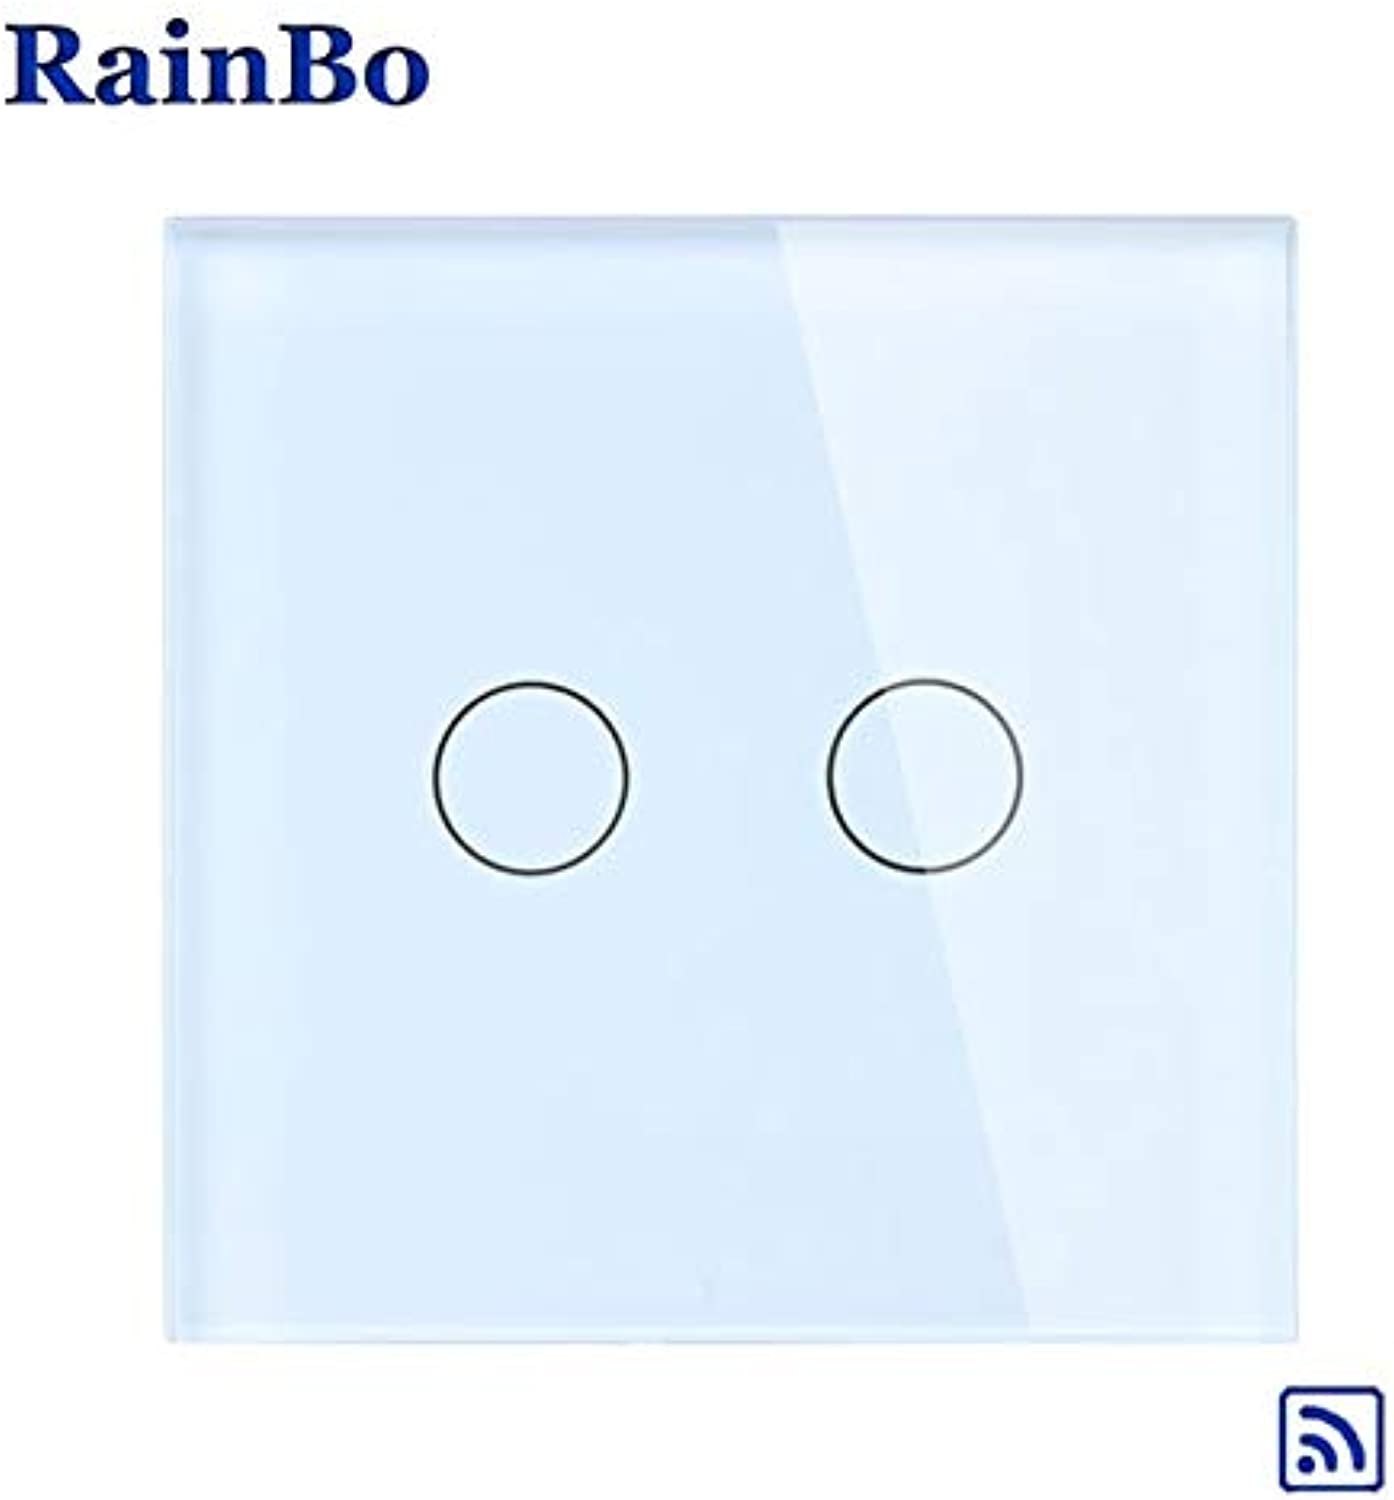 RainBo Crystal Glass Panel Switch EU Wall Switch Remote Touch Switch Screen Wall Light Switches 2gang1way LED lamp A1923CW B(color  White)